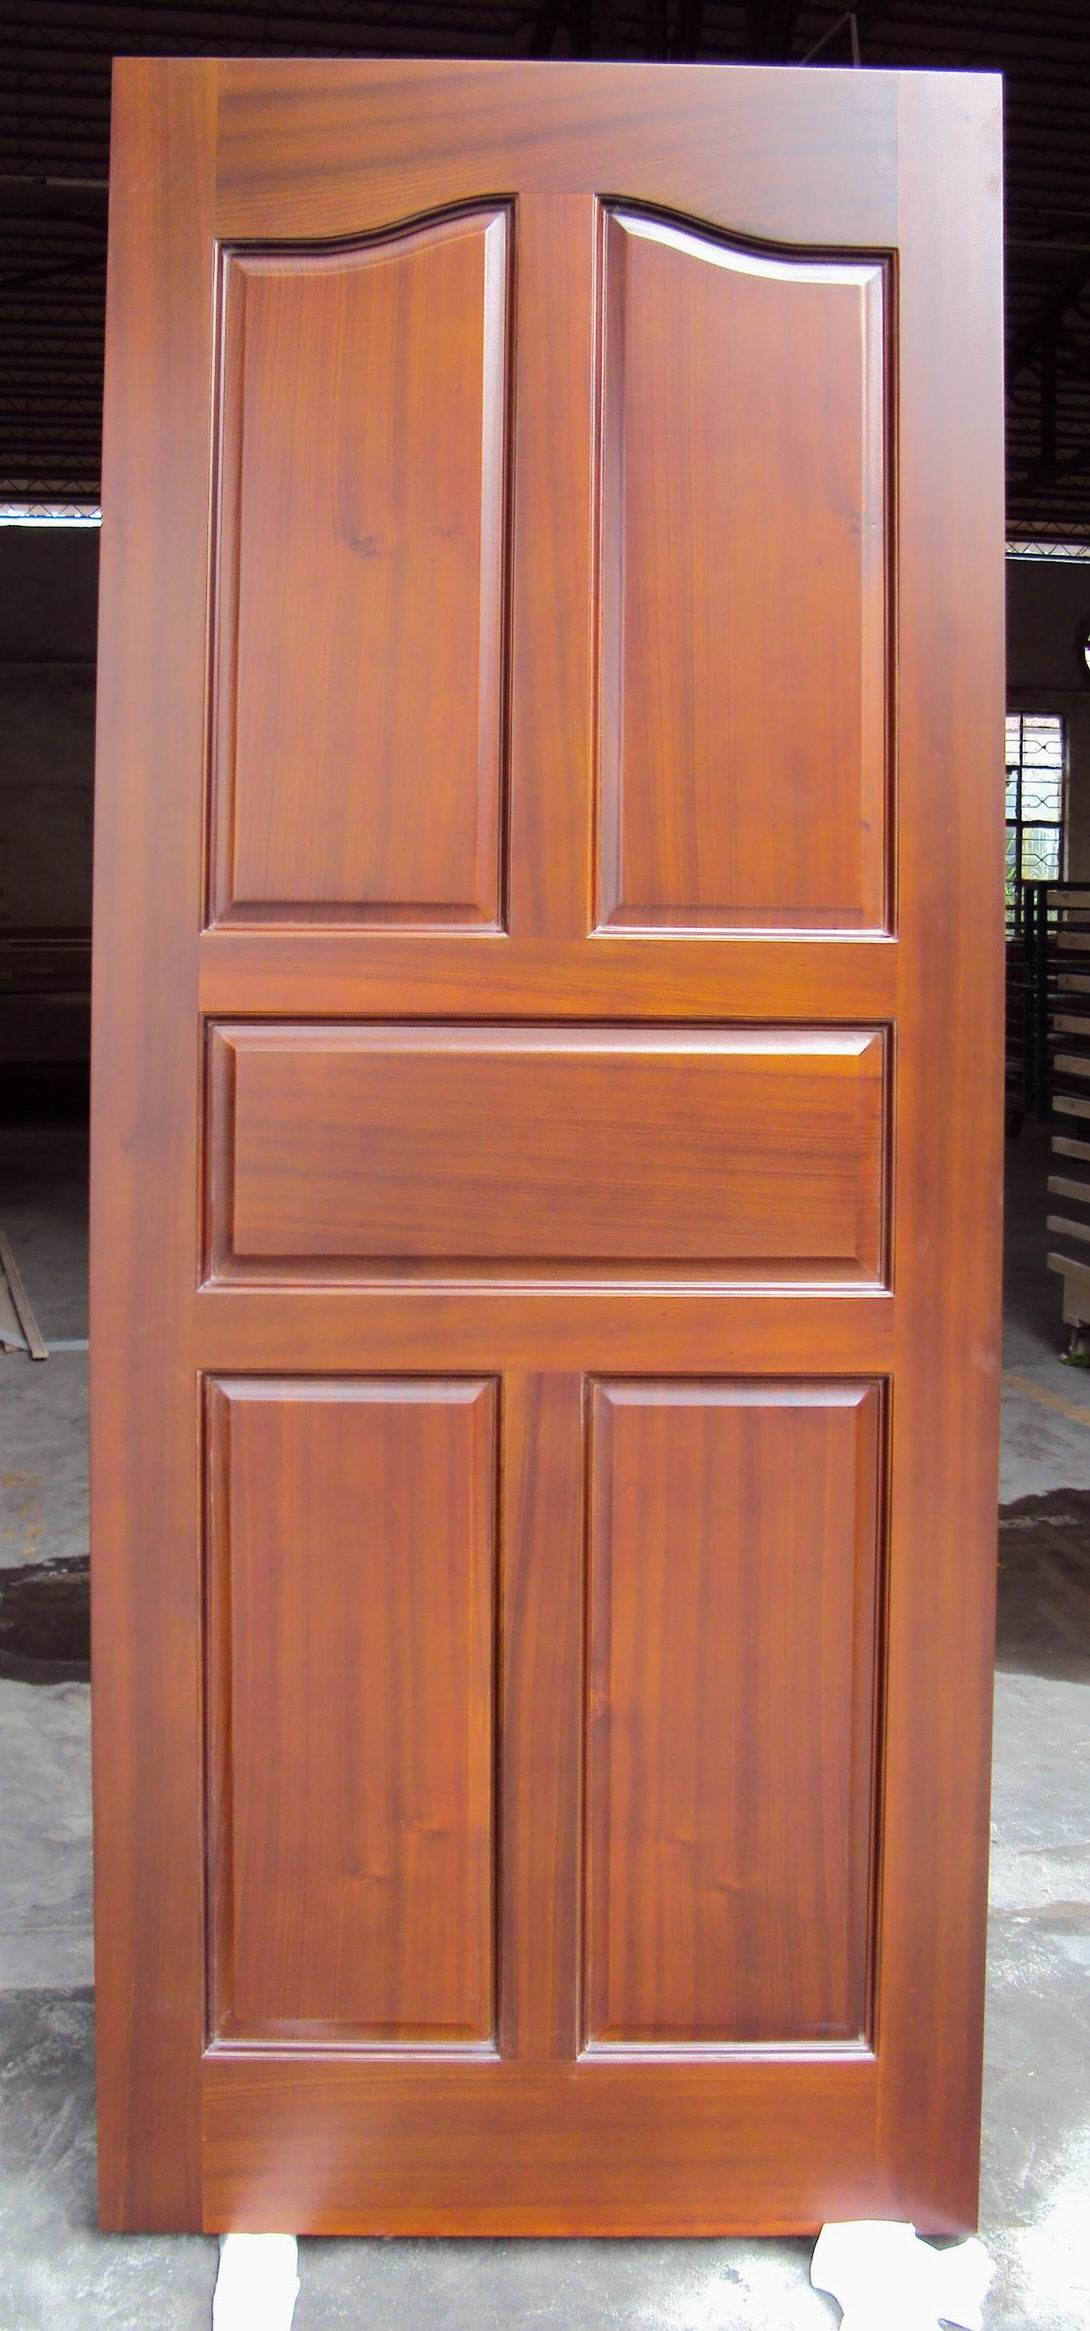 Teak wood doors crowdbuild for for Hardwood doors